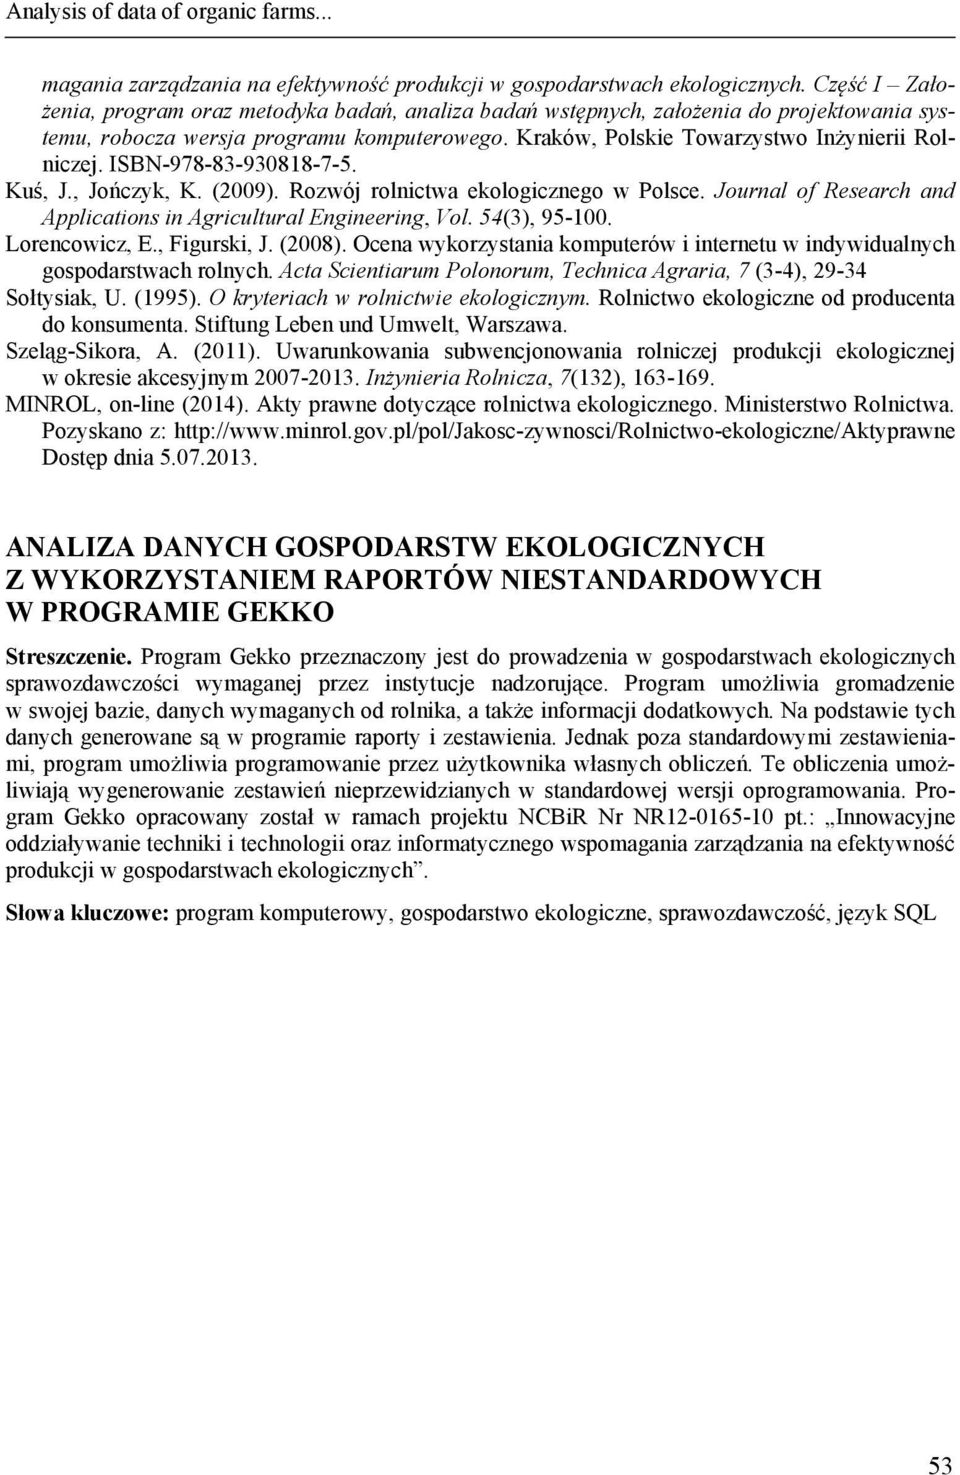 ISBN-978-83-930818-7-5. Kuś, J., Jończyk, K. (2009). Rozwój rolnictwa ekologicznego w Polsce. Journal of Research and Applications in Agricultural Engineering, Vol. 54(3), 95-100. Lorencowicz, E.